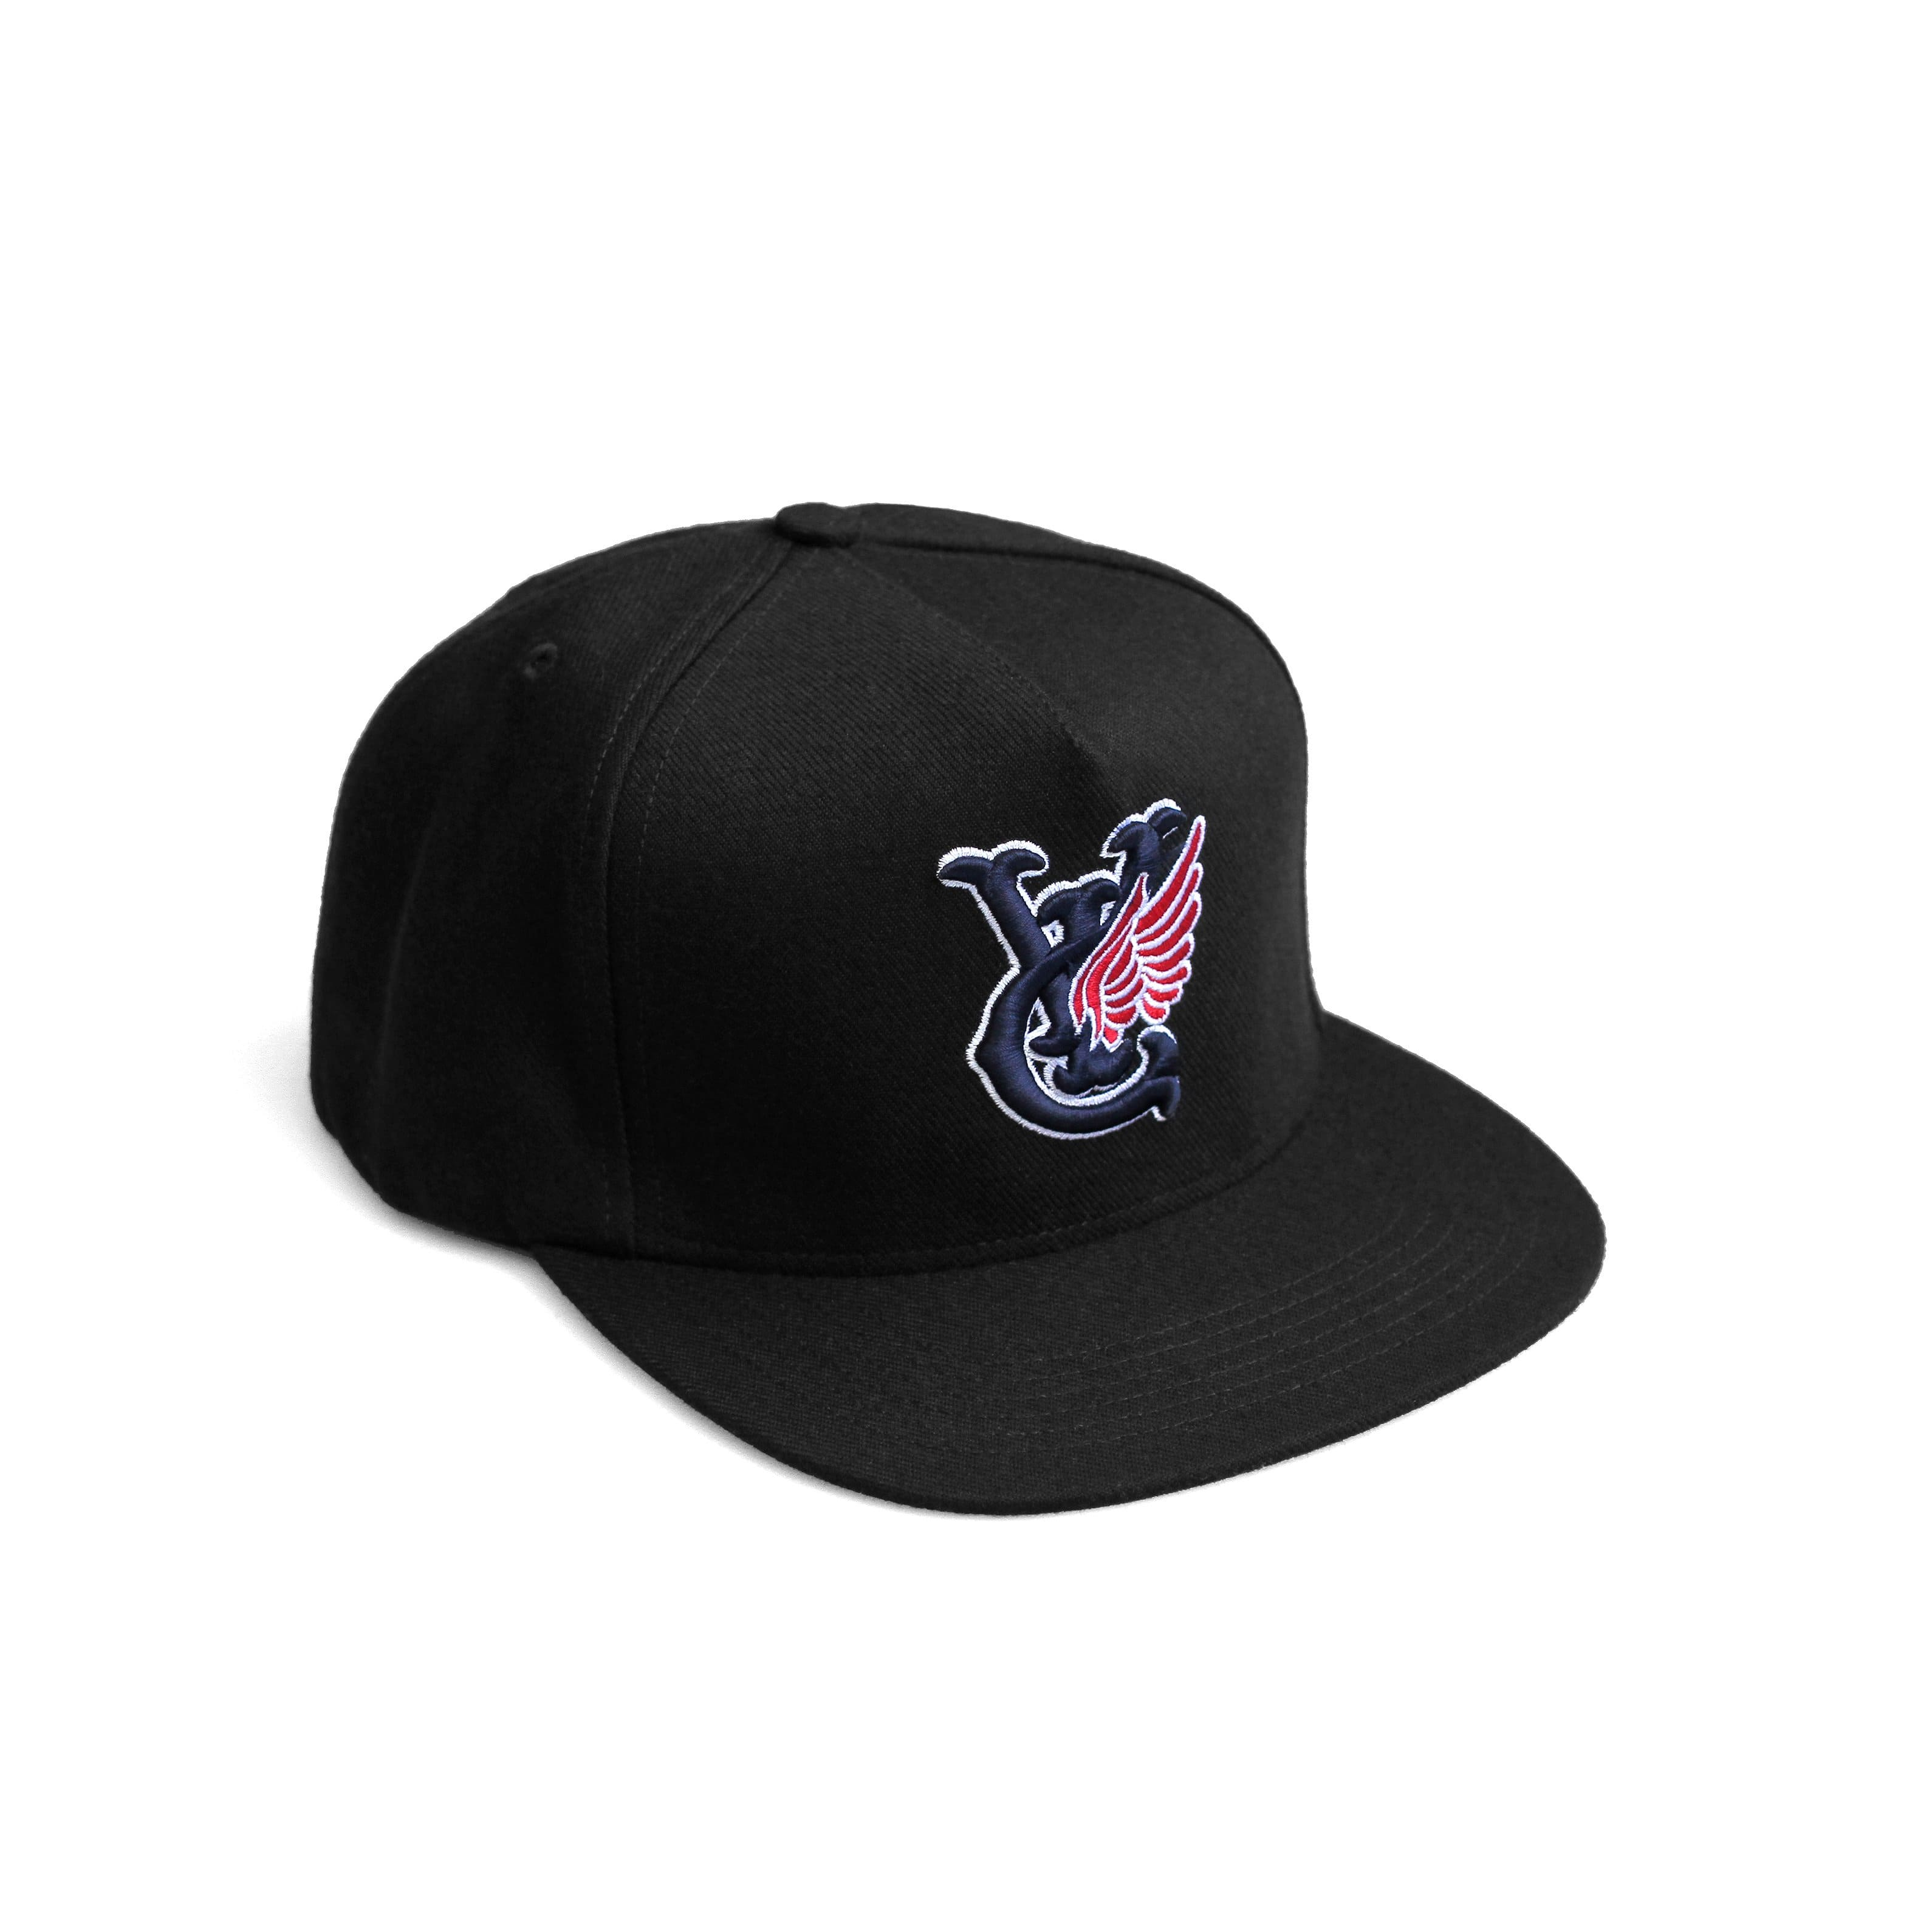 Premium quality baseball snapback hat in black by New Zealand skate and streetwear clothing label VIC Apparel. Embroidered logo. A-frame snapback cap style, hand made in the USA.